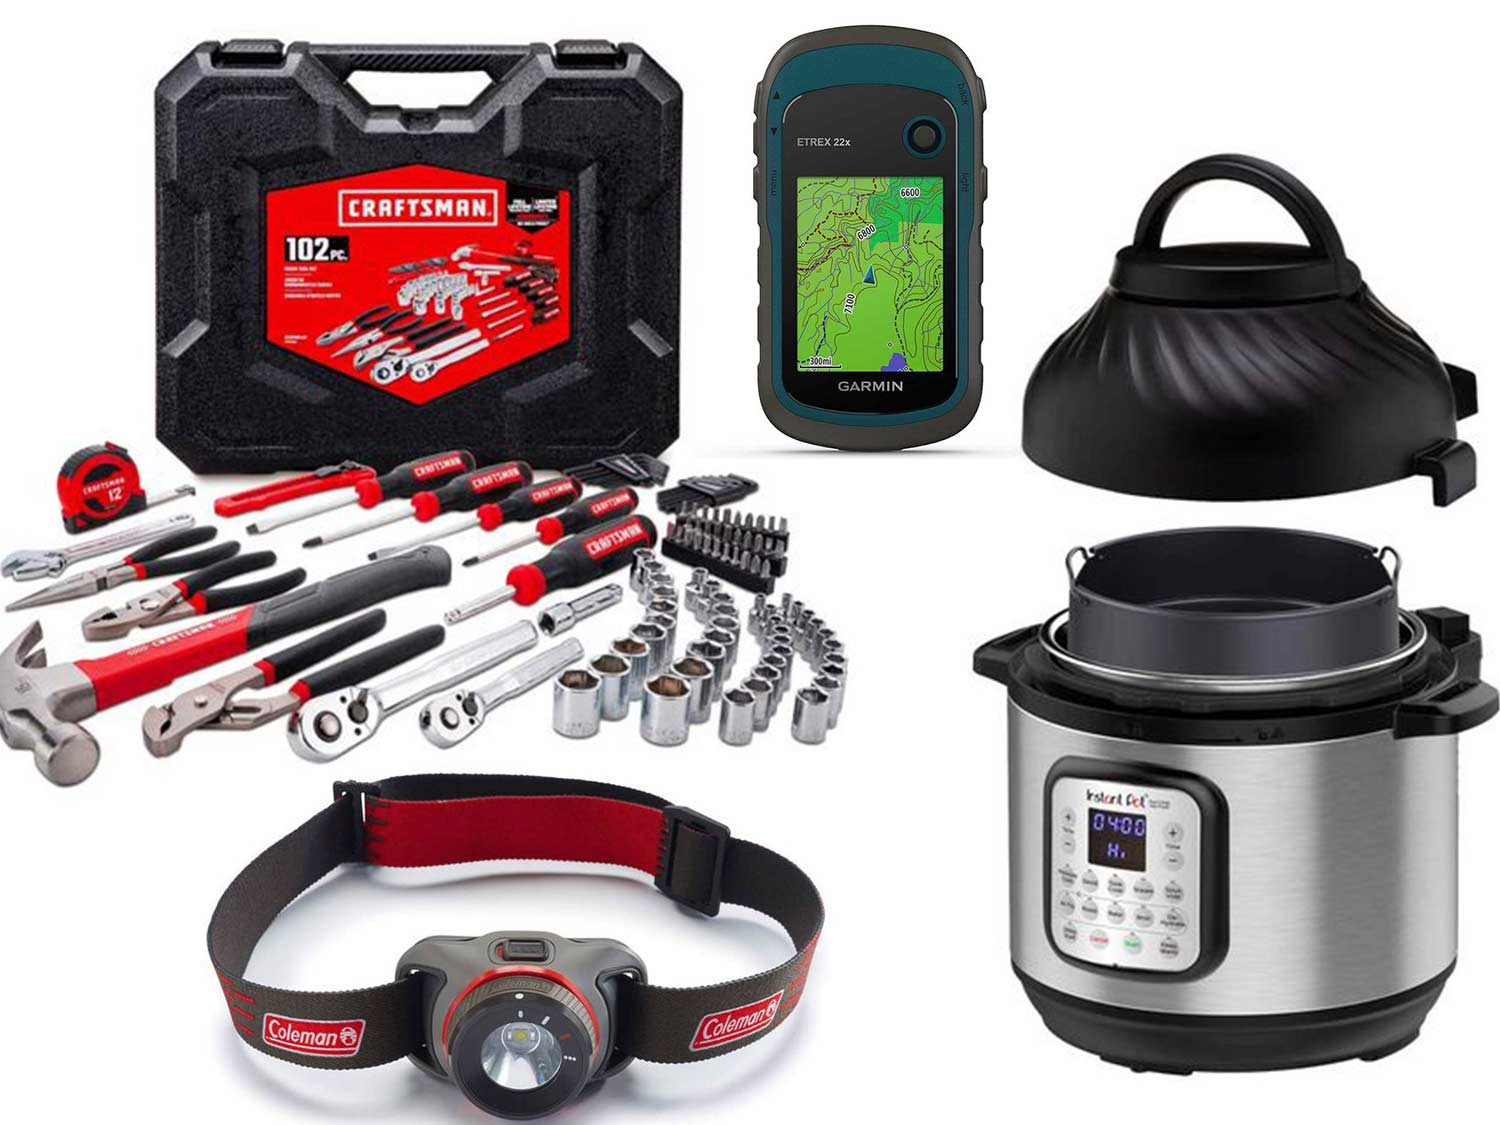 A collage of outdoor gear: Garmin wayfinder, headlamp, pressure cooker, and craftsman toolset on a white background.